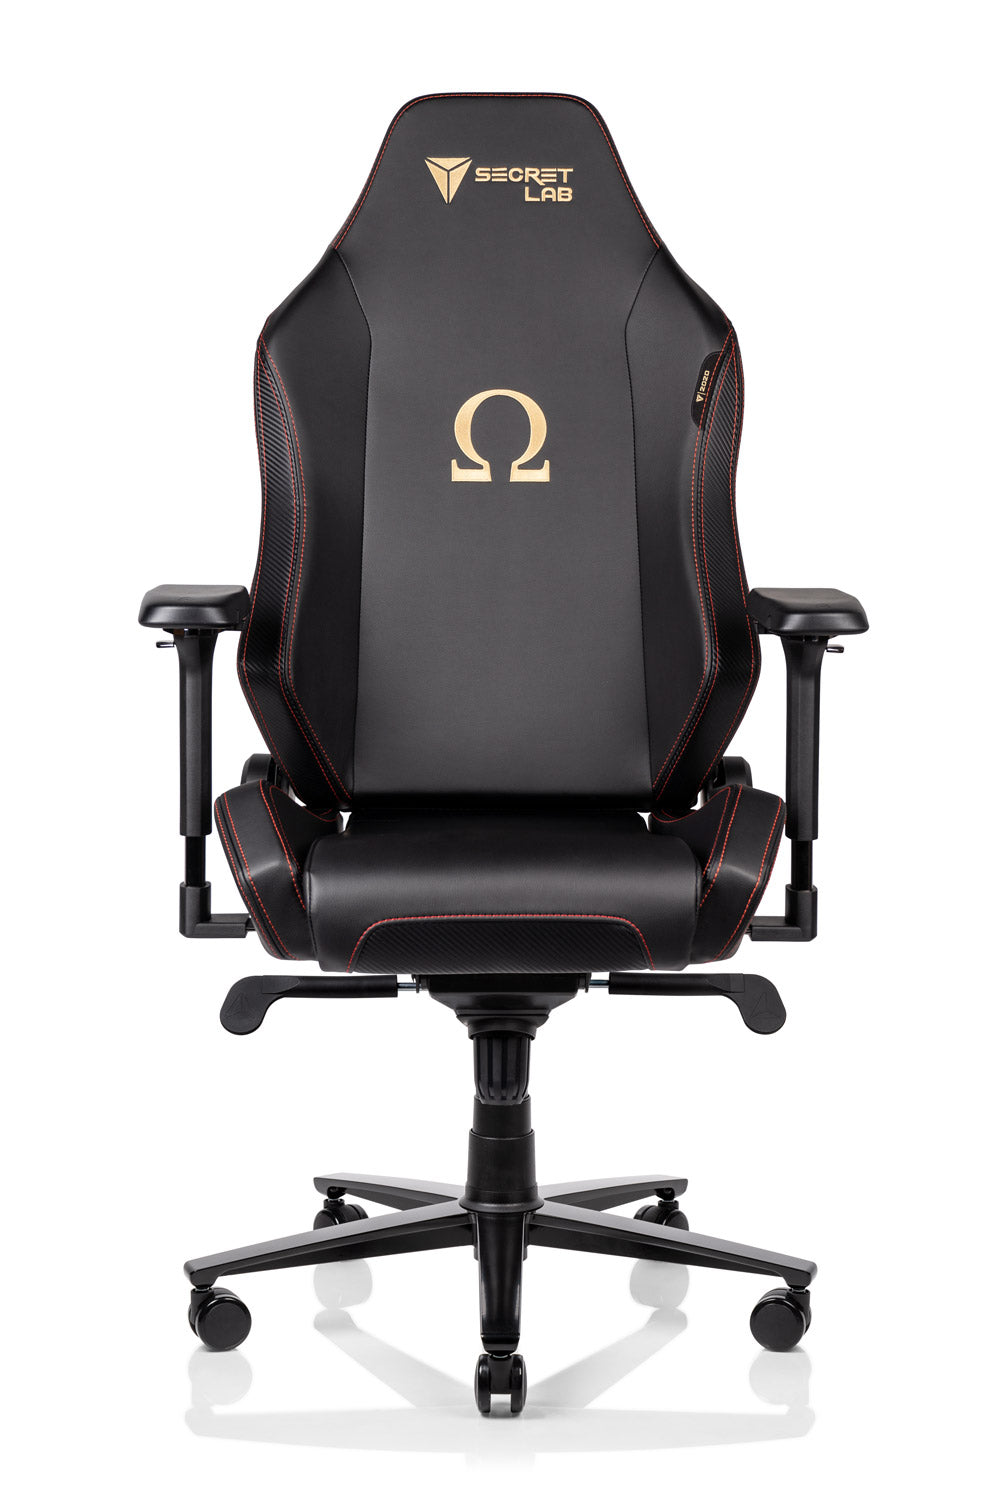 Best Computer Chair 2020 OMEGA Series gaming chairs | Secretlab US